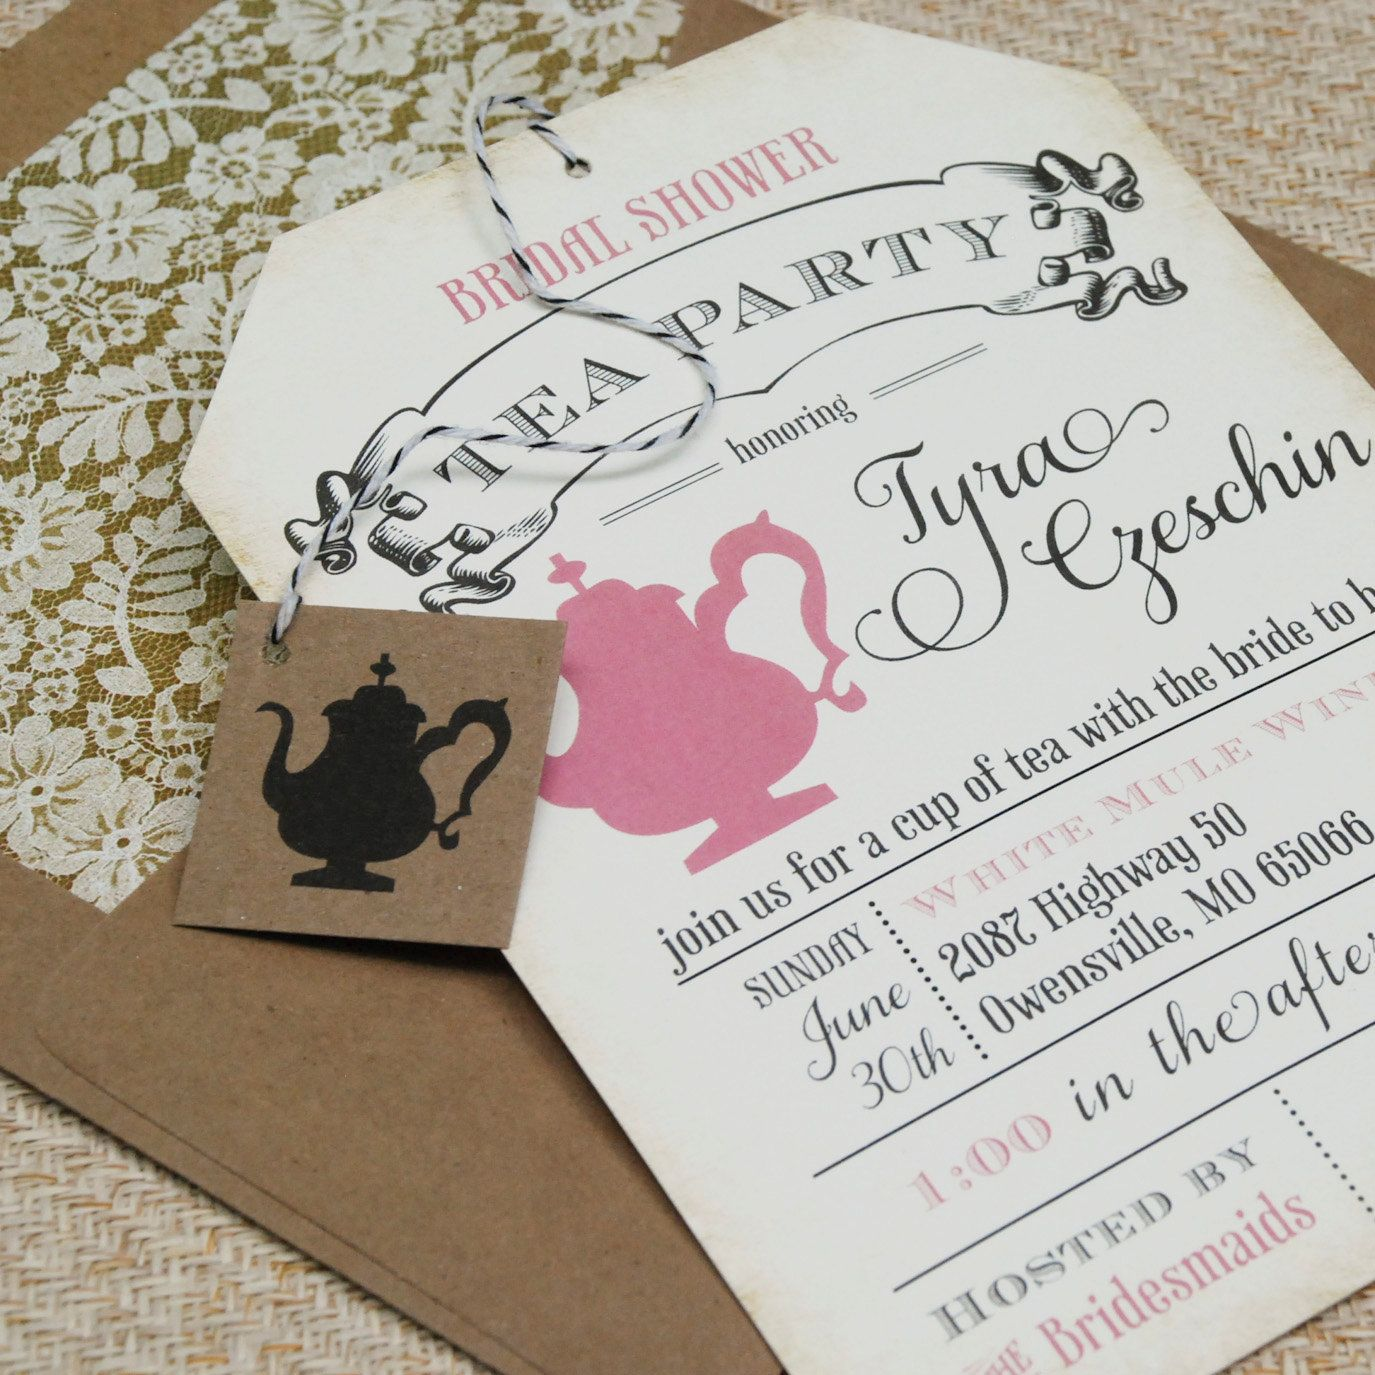 Ea party bridal shower invitation design fee bridal shower tea party invitation idea this is essentially the invite but with a few changes and diff monicamarmolfo Image collections